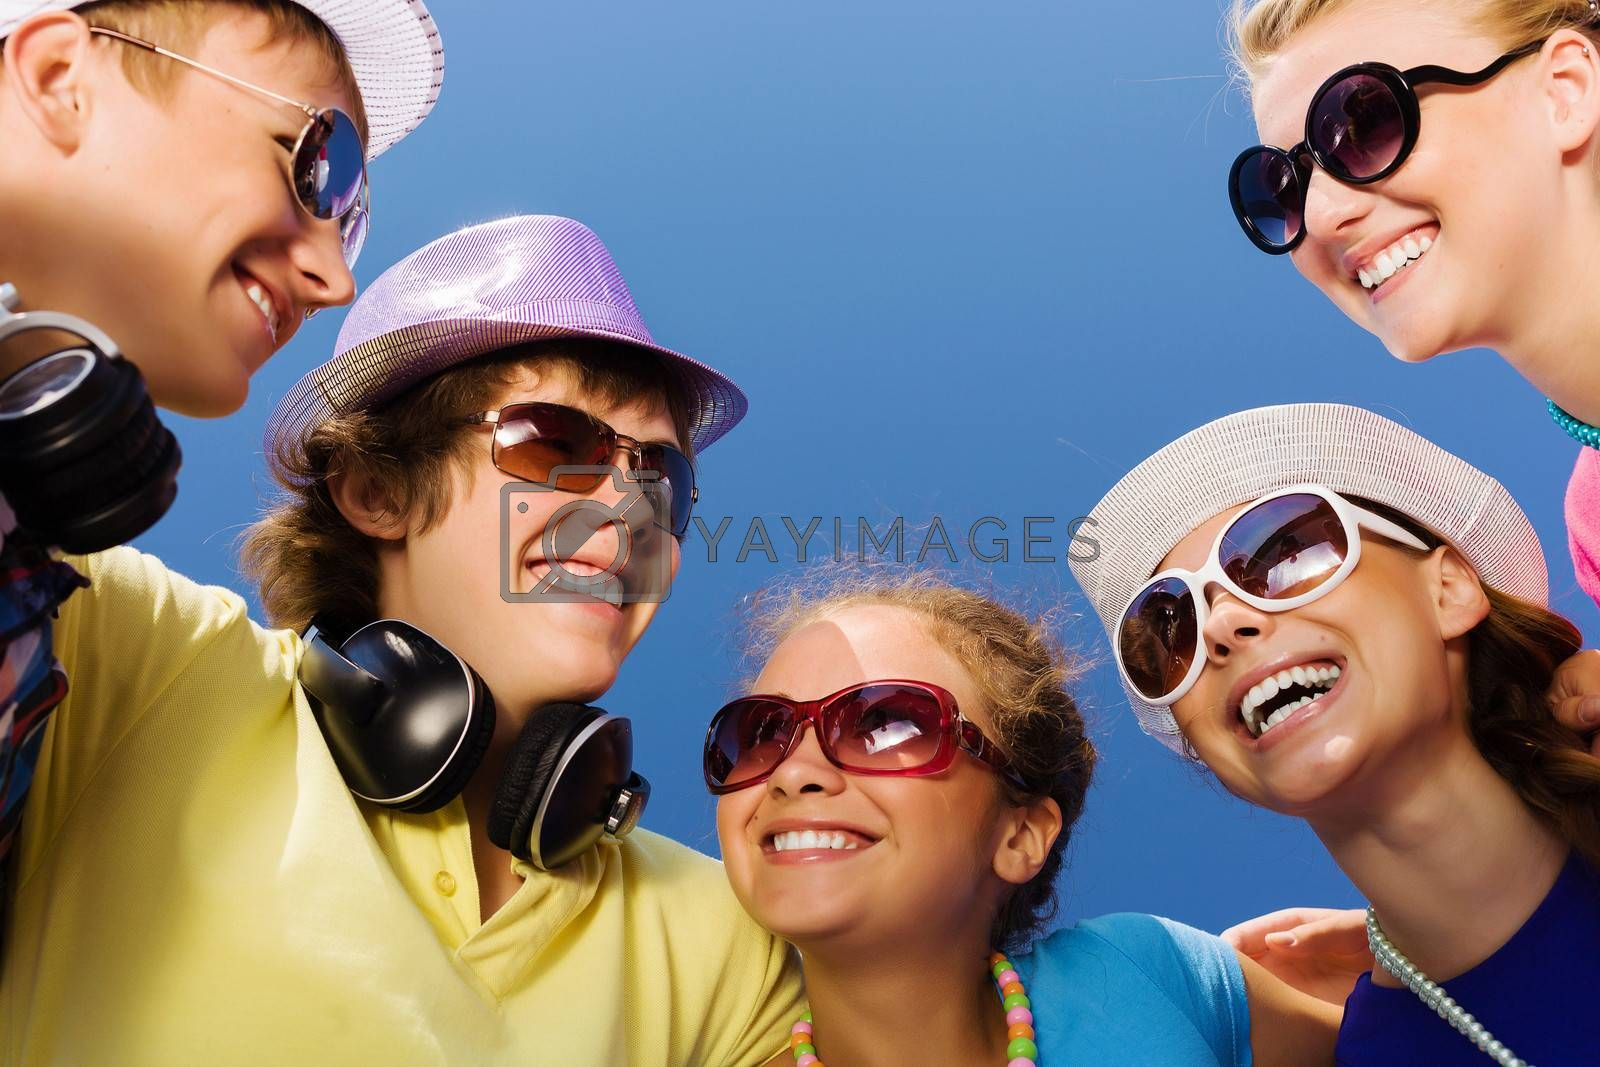 Royalty free image of Young and happy by sergey_nivens